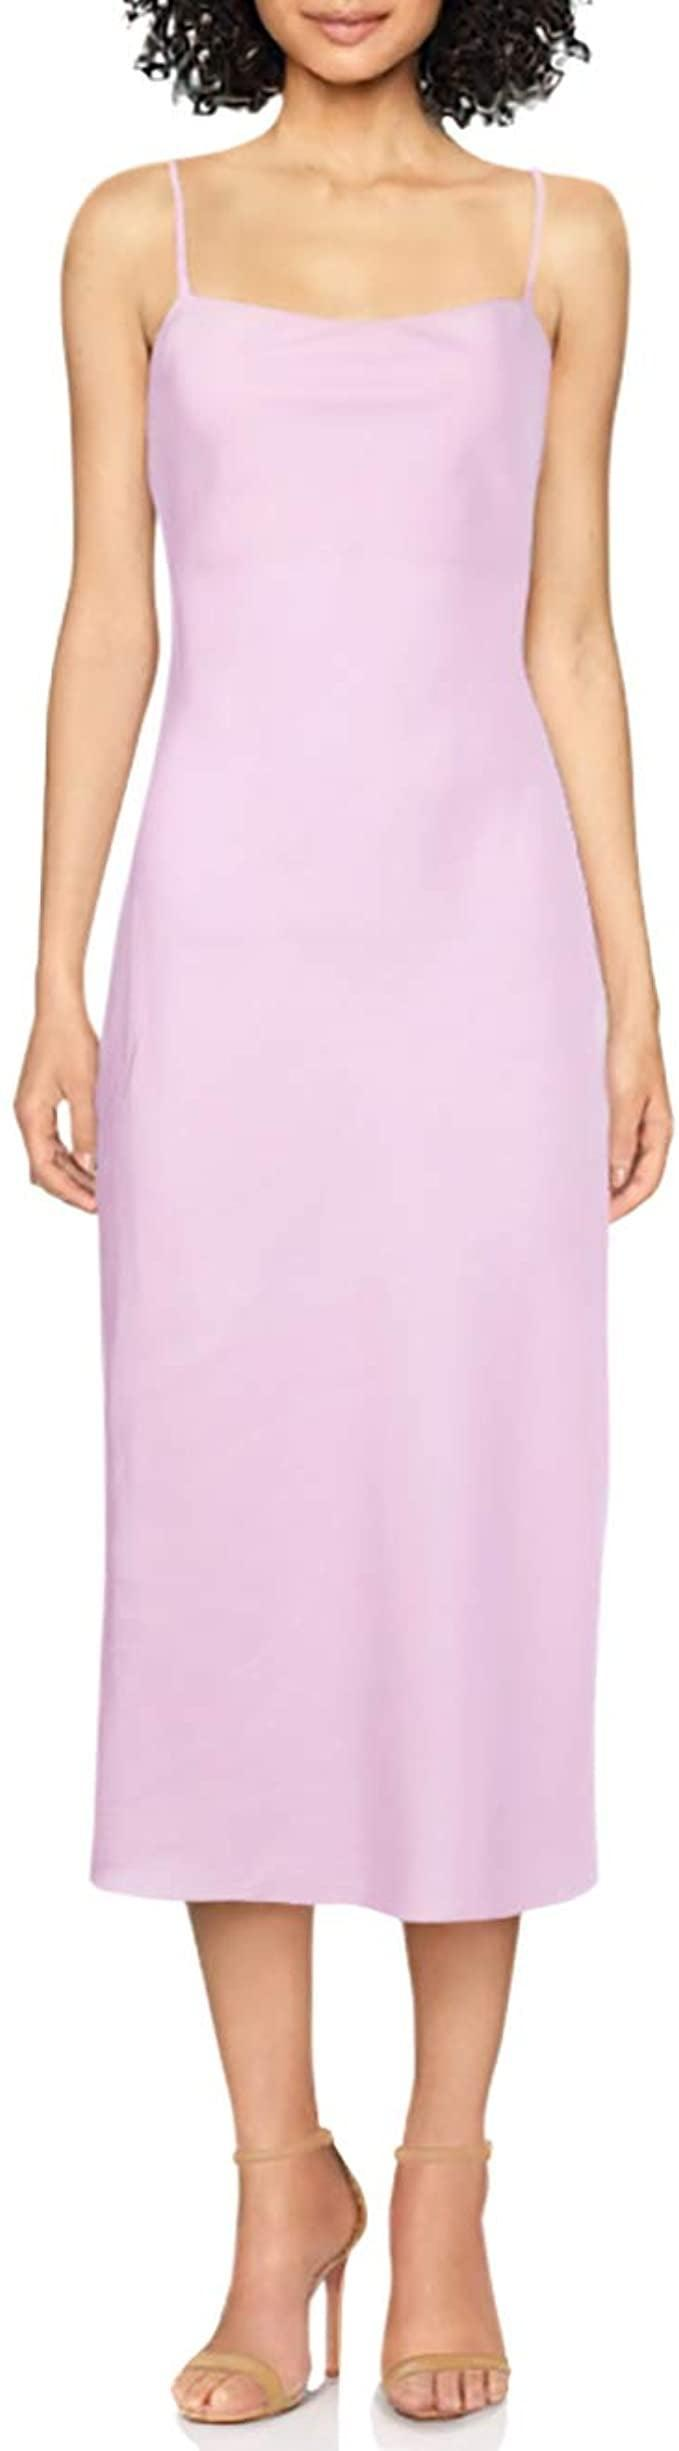 <p>You'll swear by this confidence-boosting <span>ASTR the Label Bonita Slip Dress</span> ($118) for meetings where you want to impress.</p>